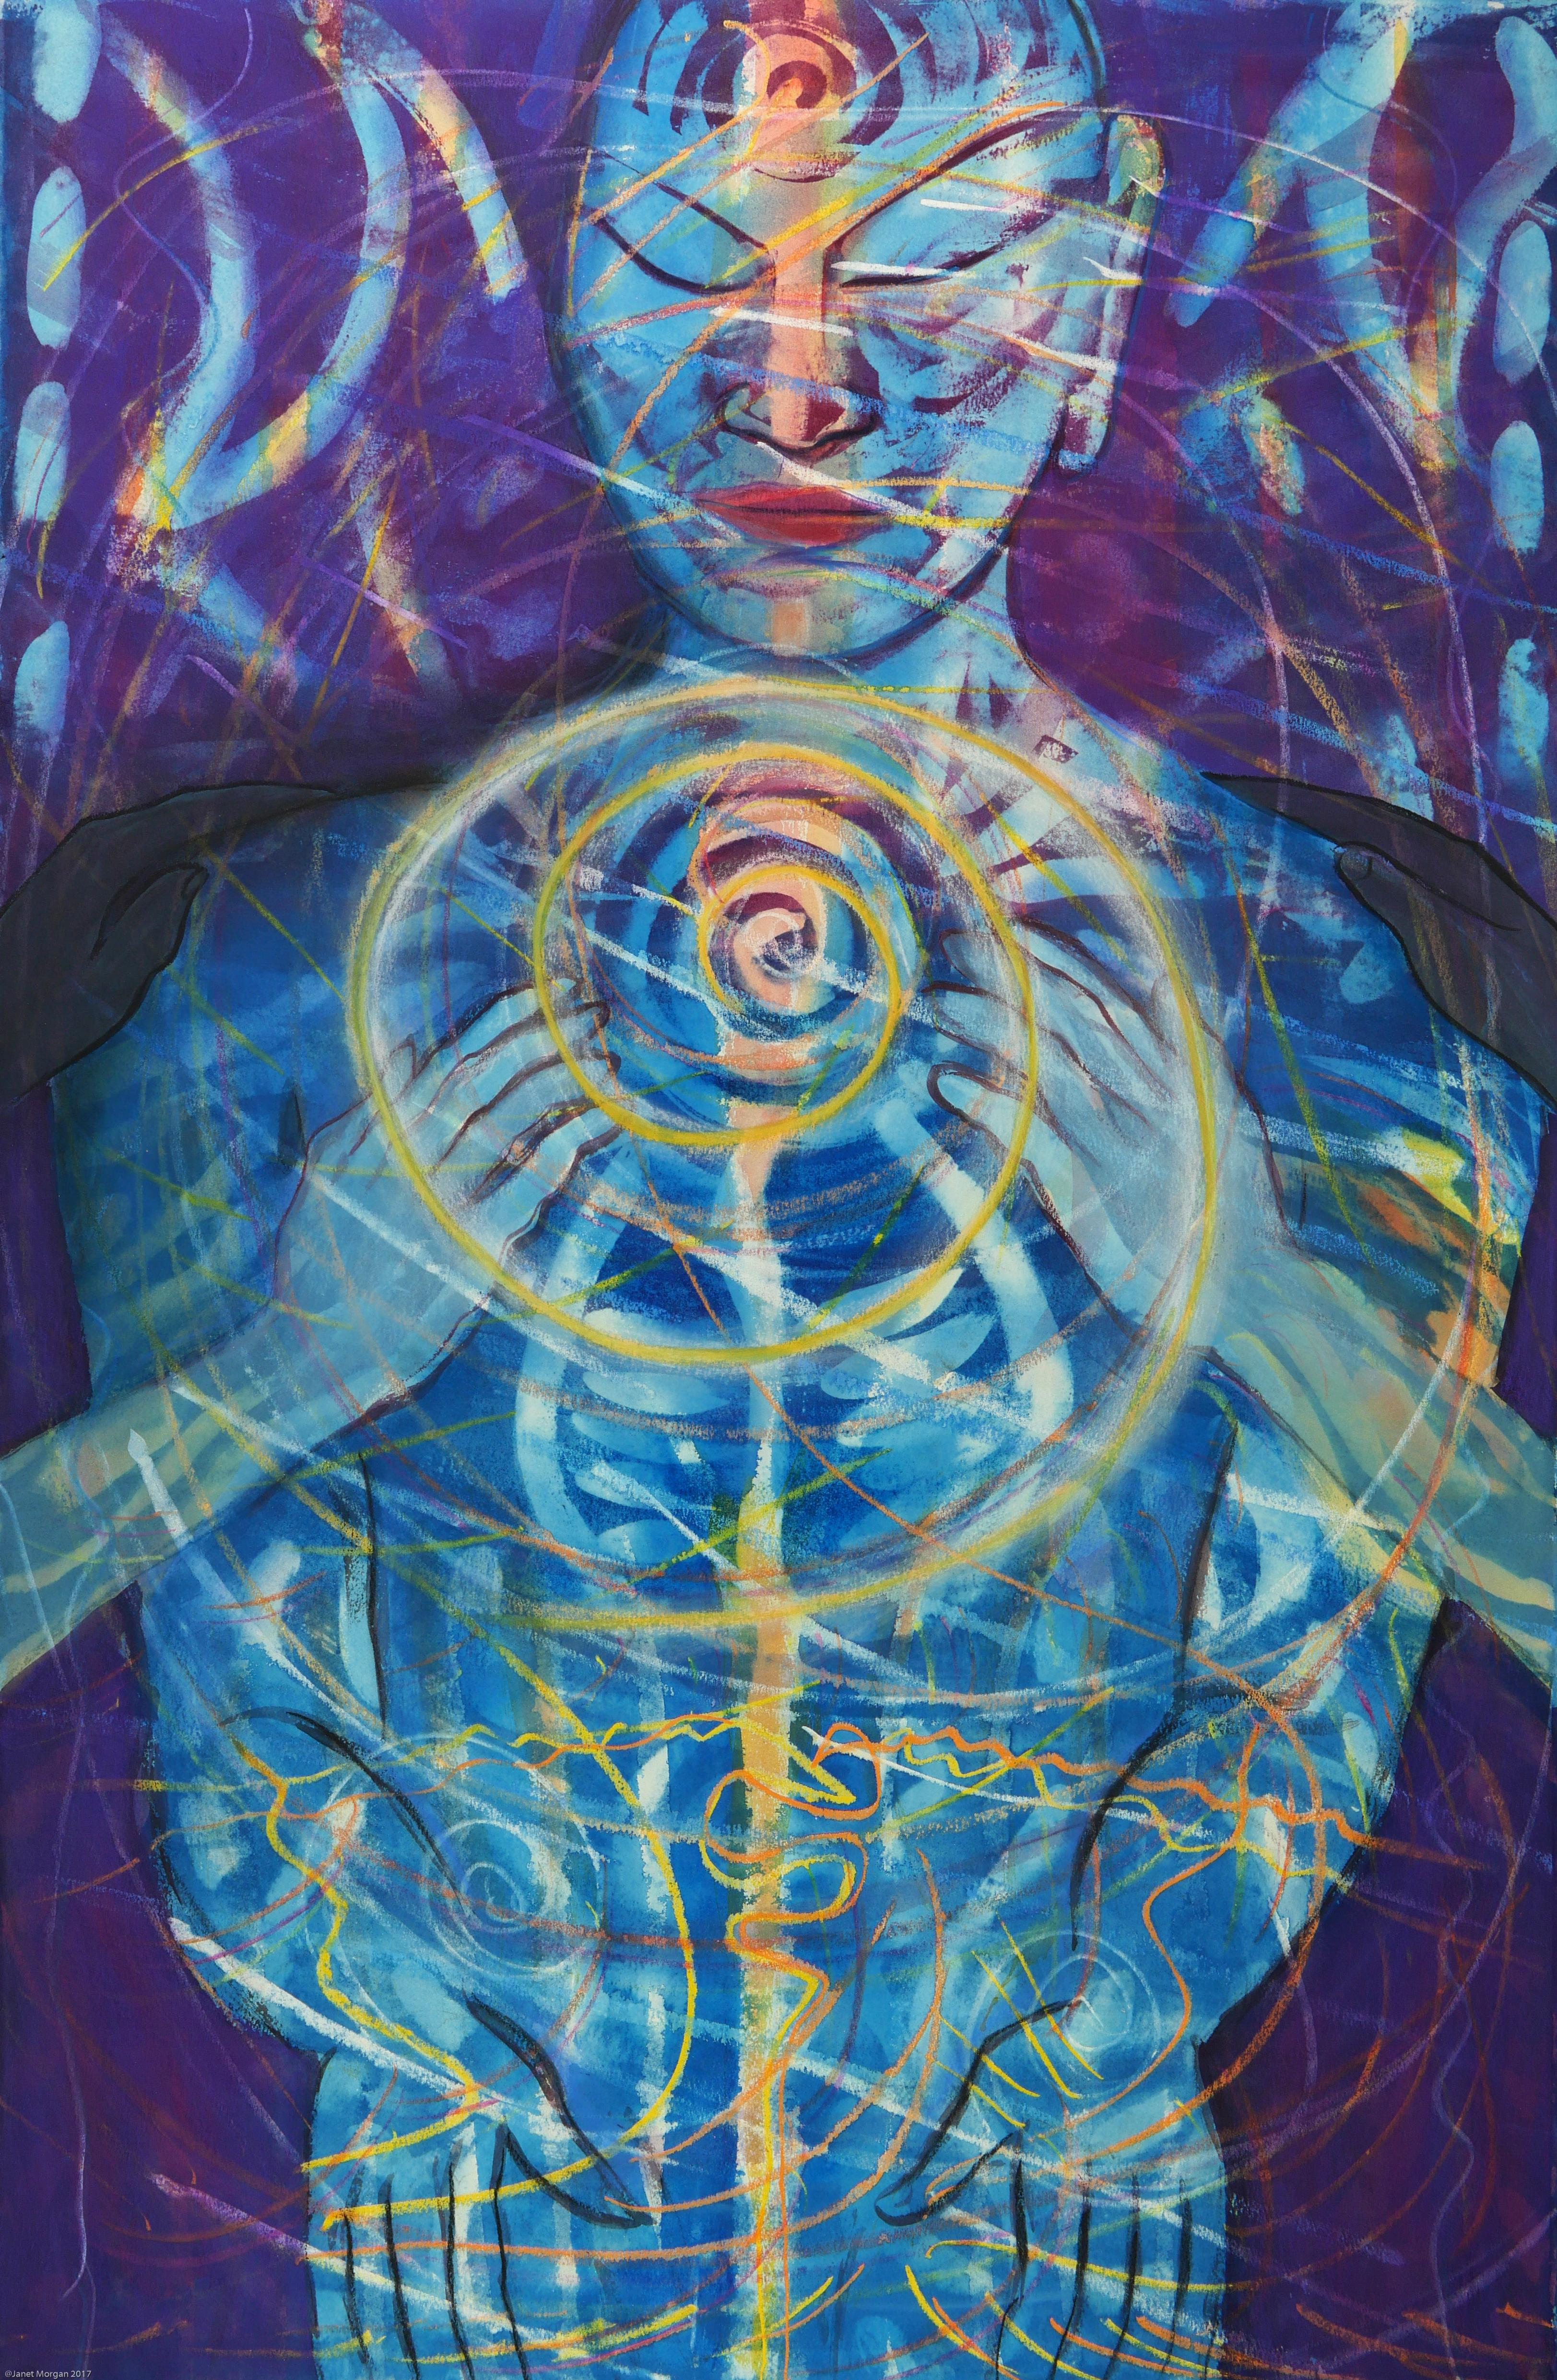 Help From Friends, colorful blues, purples, spiritual figure abstract watercolor